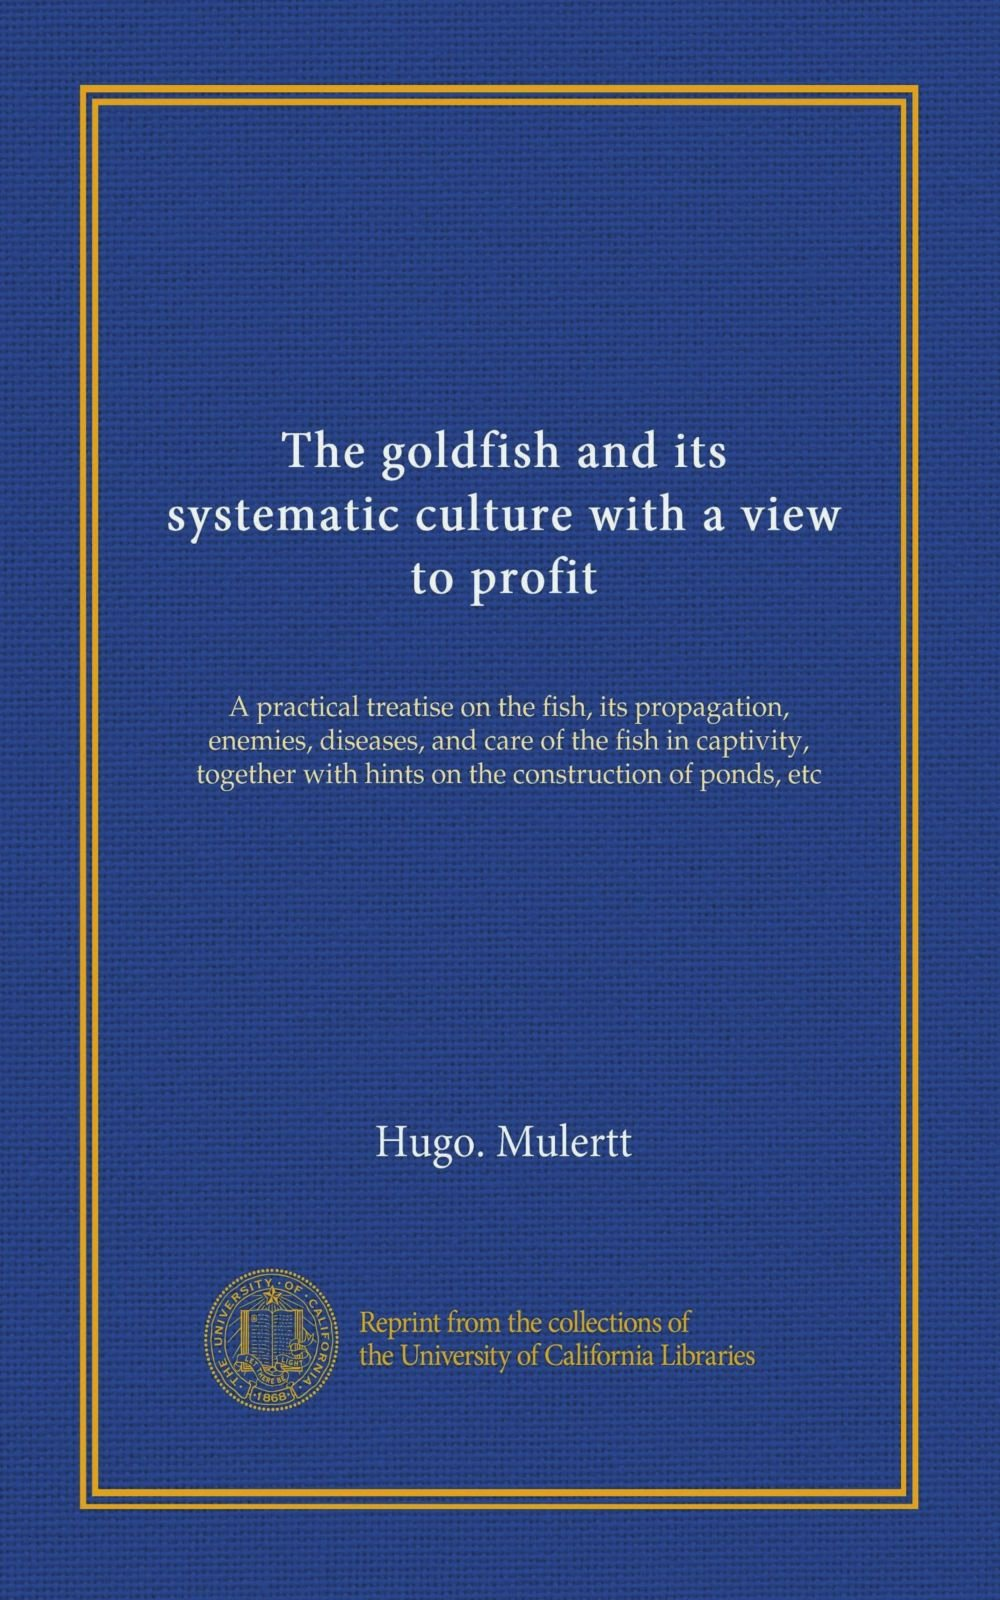 The goldfish and its systematic culture with a view to profit: A practical treatise on the fish, its propagation, enemies, diseases, and care of the ... with hints on the construction of ponds, etc ebook